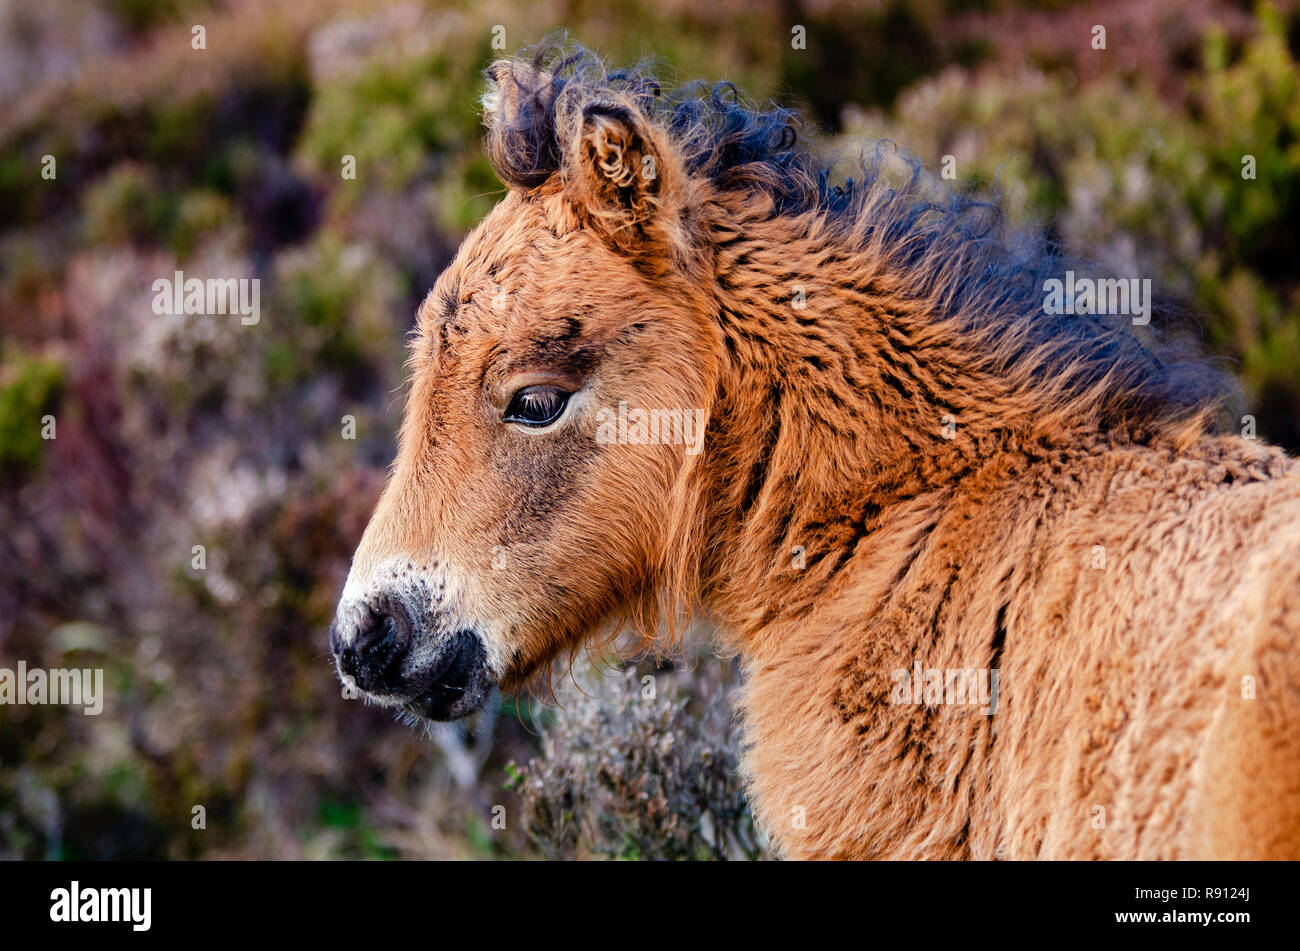 Wild pony foal amongst the heather landscape of Loch Druidibeg, Isle of South Uist, Outer Hebrides, Scotland, U.K. - Stock Image